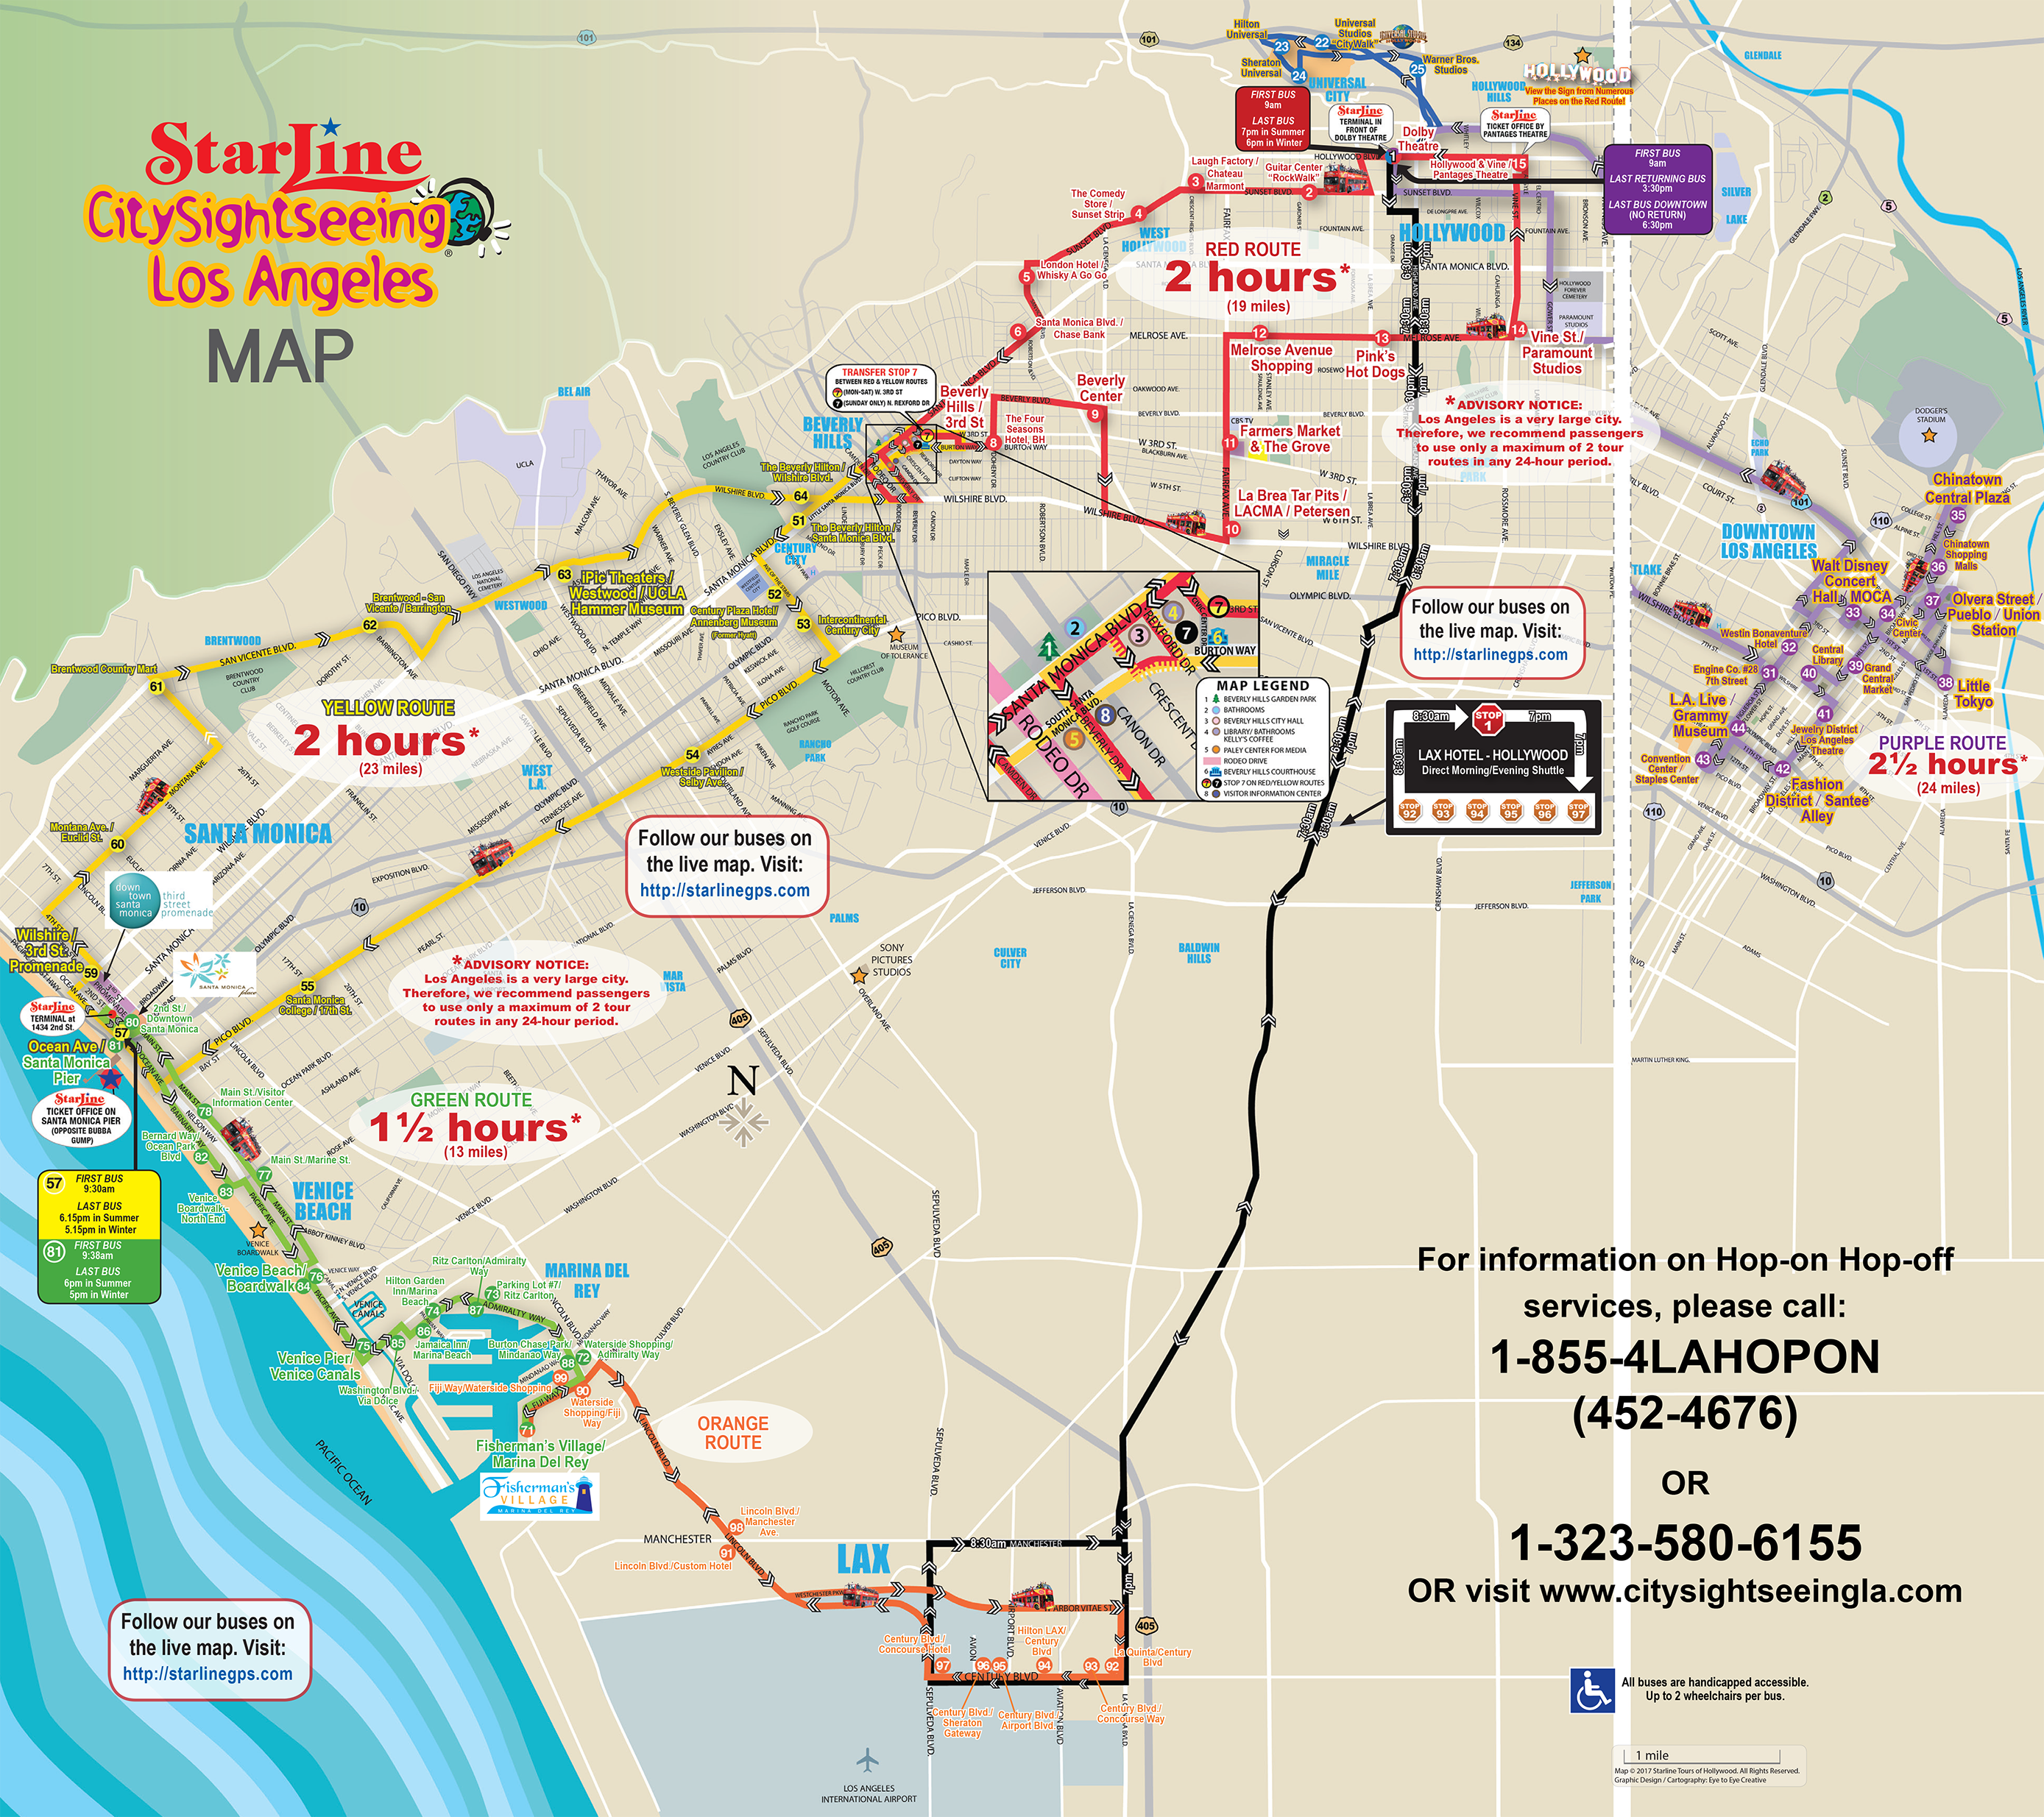 Bus tour map for La star homes tour